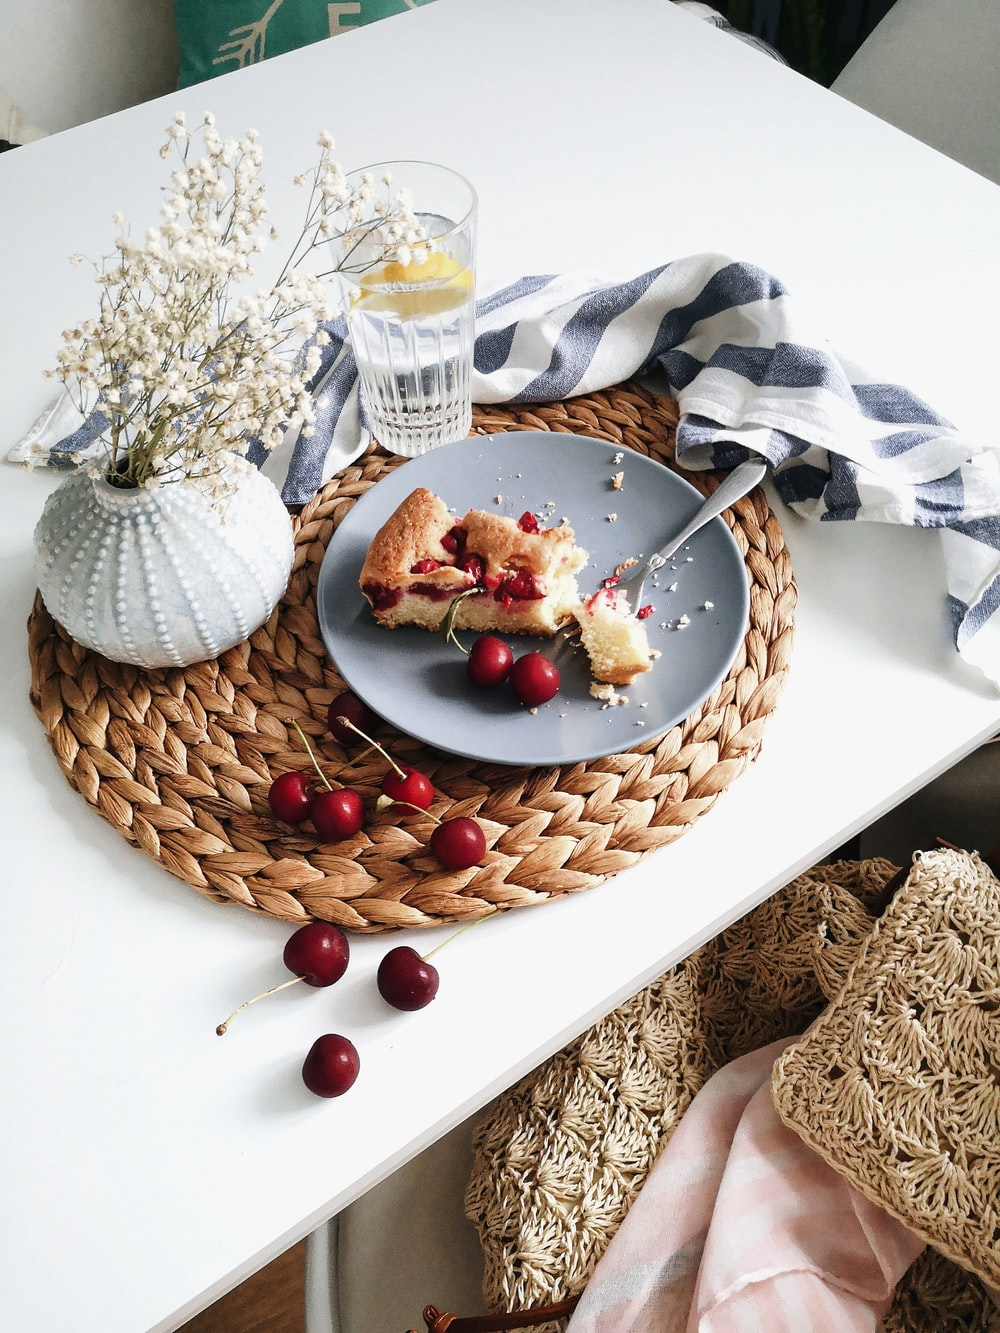 sliced pie with cherries in plate near water in glass on table